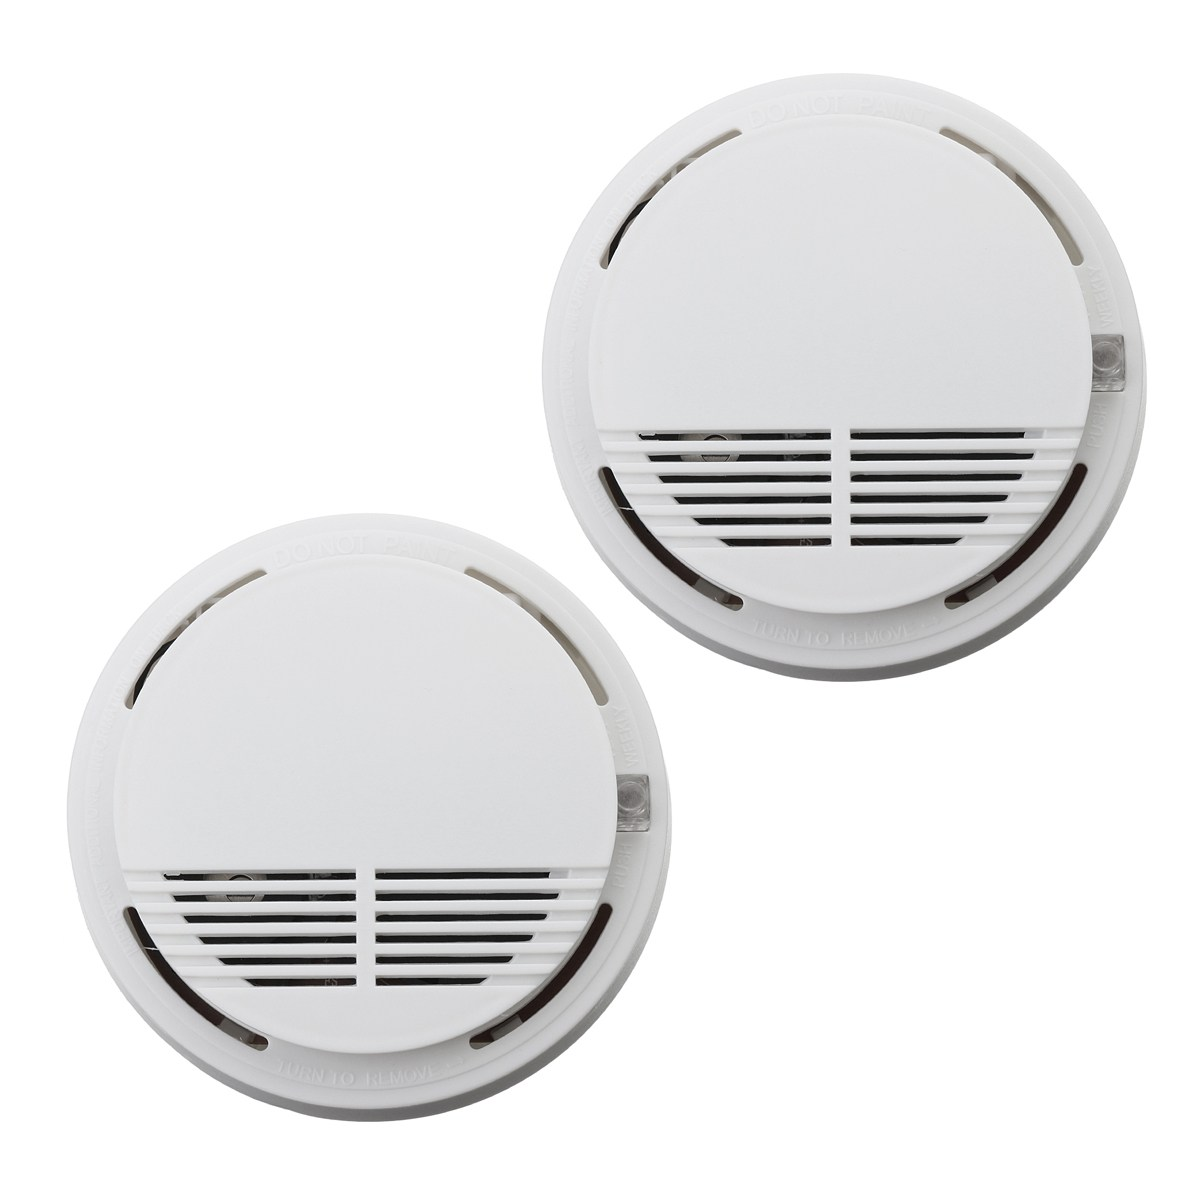 Safurance 2Pcs Home Security Photoelectric Cordless Smoke Detector Fire Sensor Alarm White High Sensitive yobangsecurity high sensitivity photoelectric smoke detector fire alarm sensor for home security independent smoke sensor white